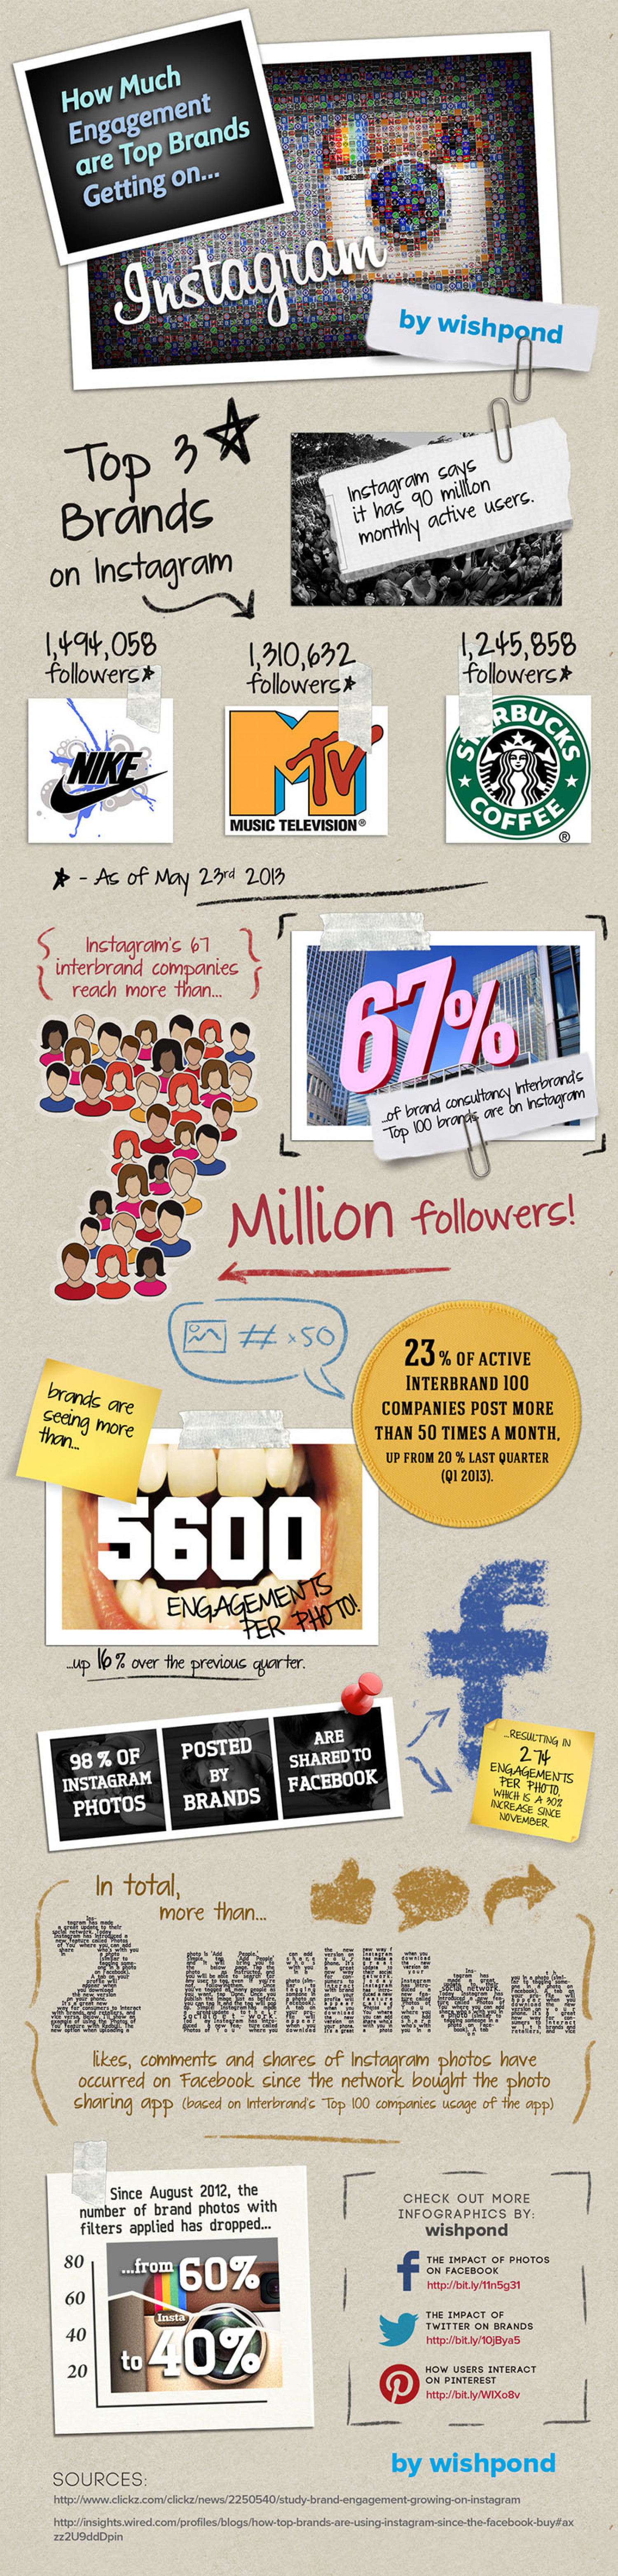 How Much Engagement Are Top Brands Getting on Instagram? Infographic